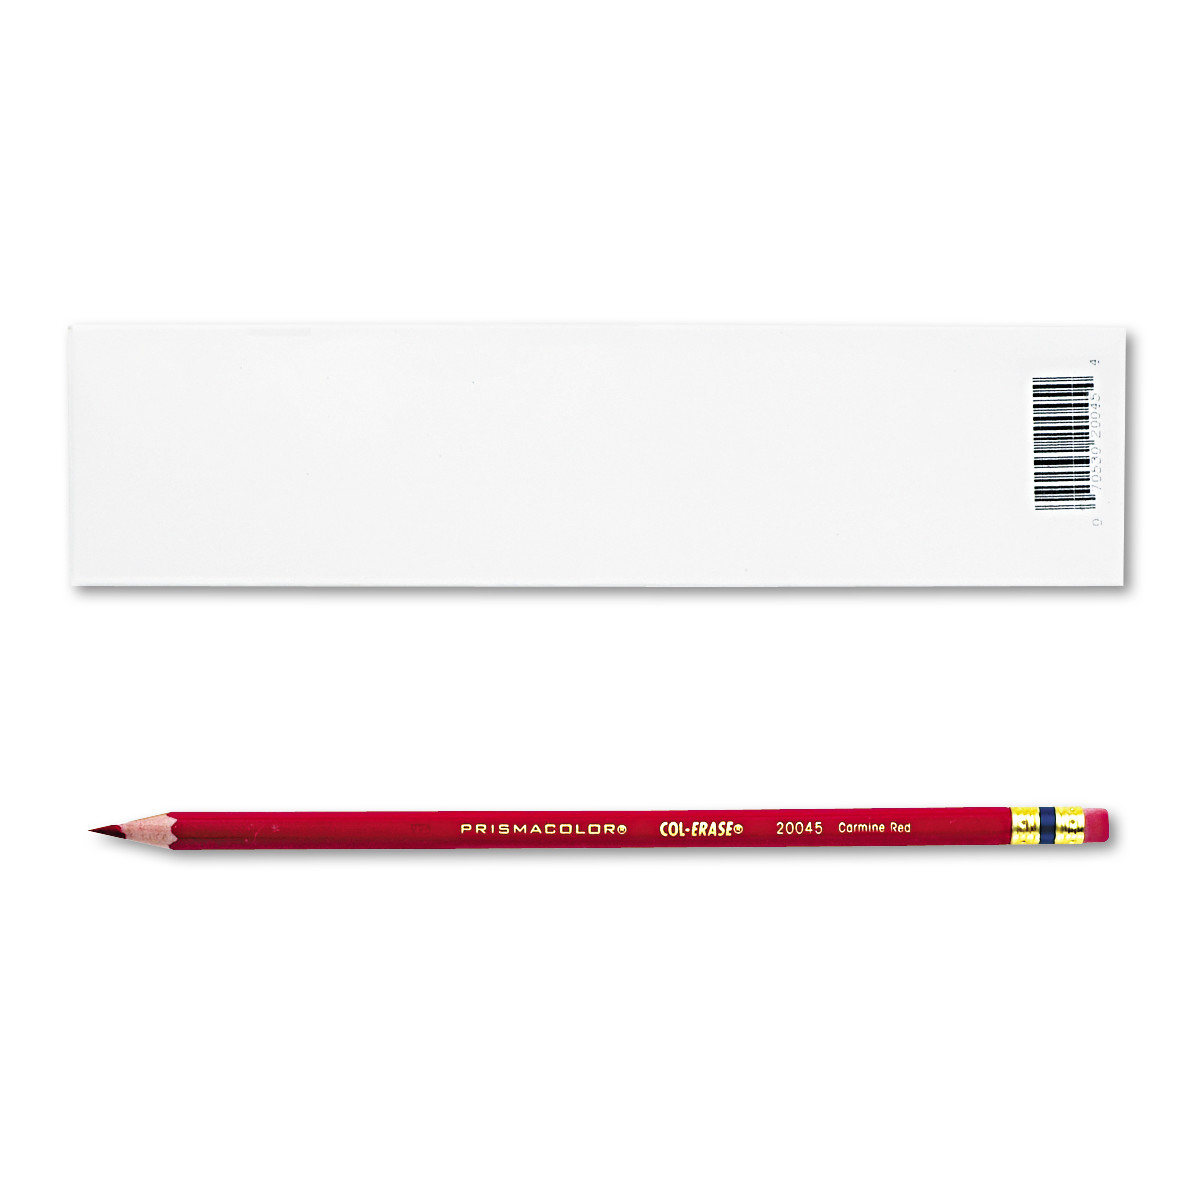 Prismacolor Col-Erase Pencil w/Eraser, Carmine Red Lead/Barrel, Dozen